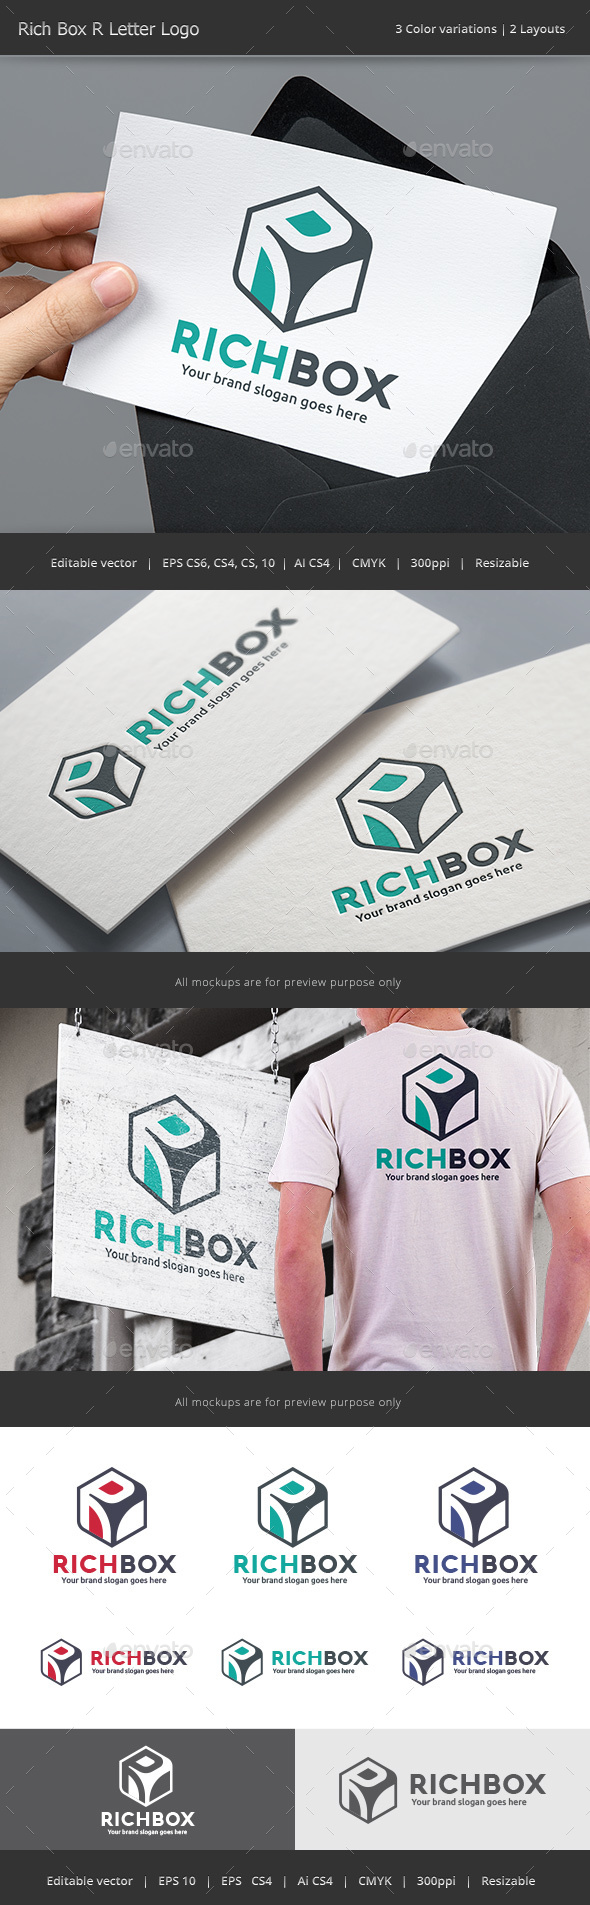 Rich Box Letter R Logo - Vector Abstract